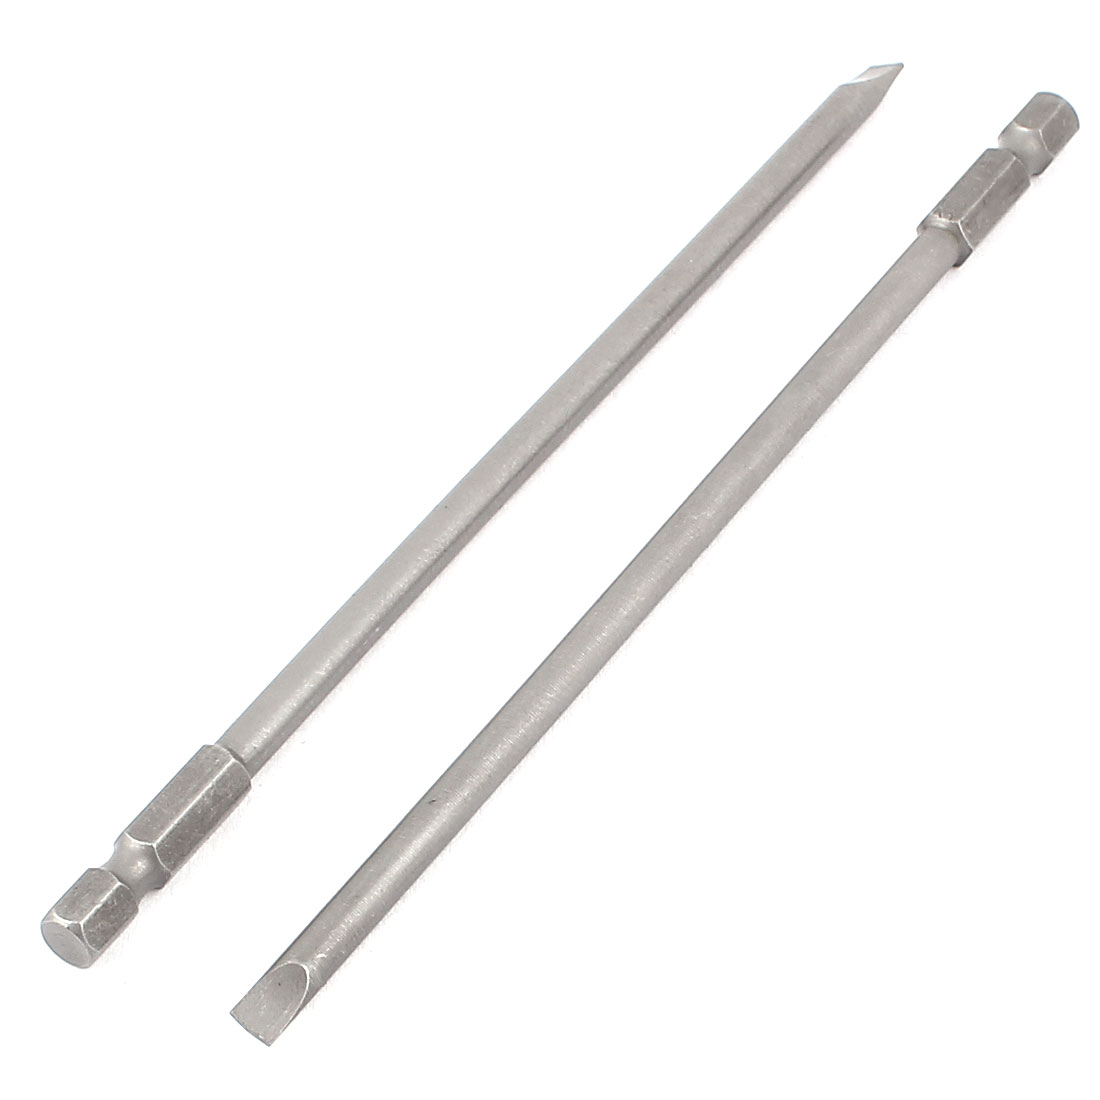 2 Pcs JANPAN S2 Magnetic Slotted Electric Screwdriver Bits Hex Head 6mm x 150mm